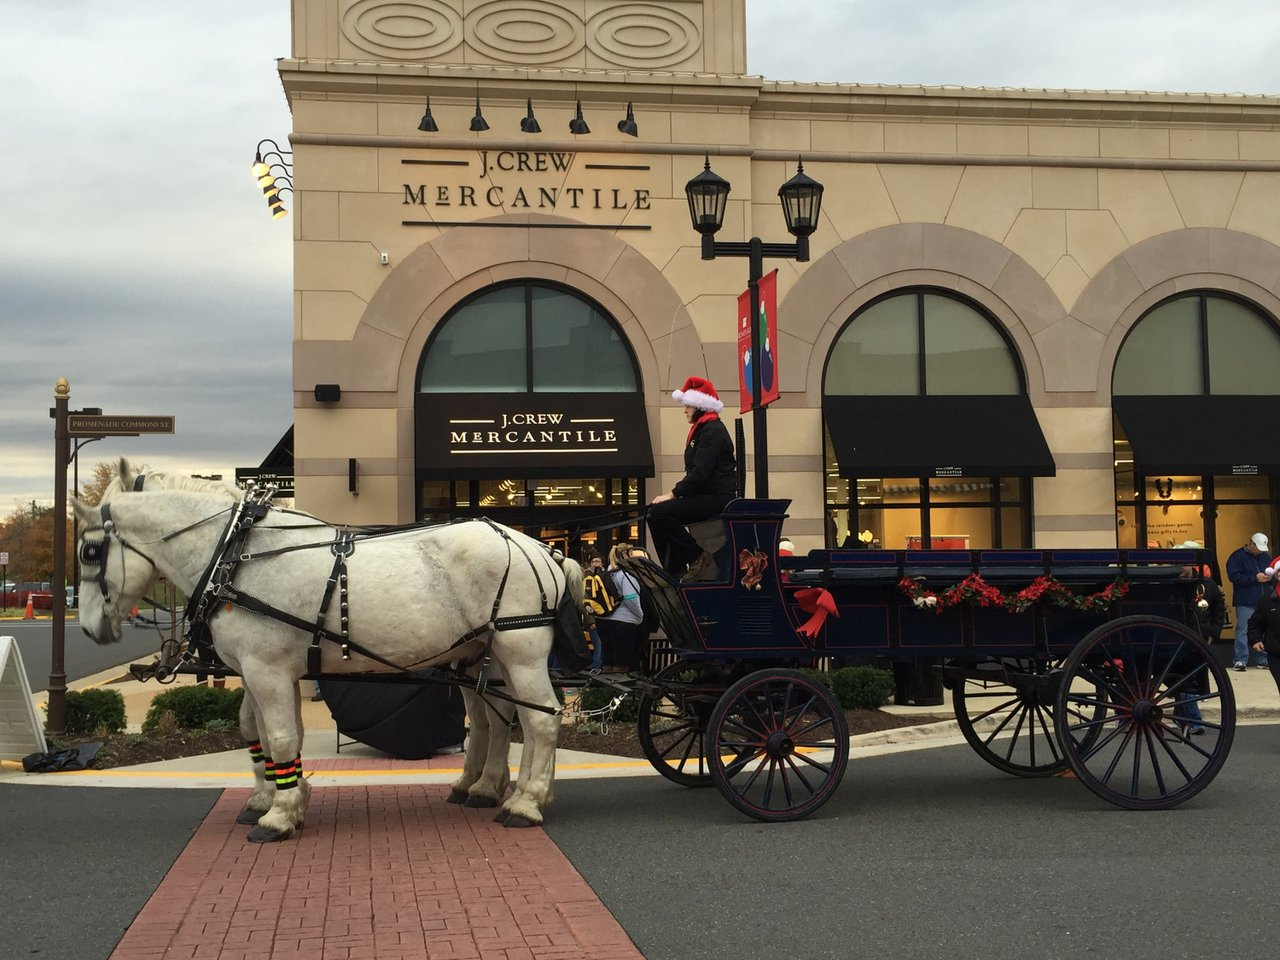 The Shenandoah Carriage Company photo IMG_3761.jpg